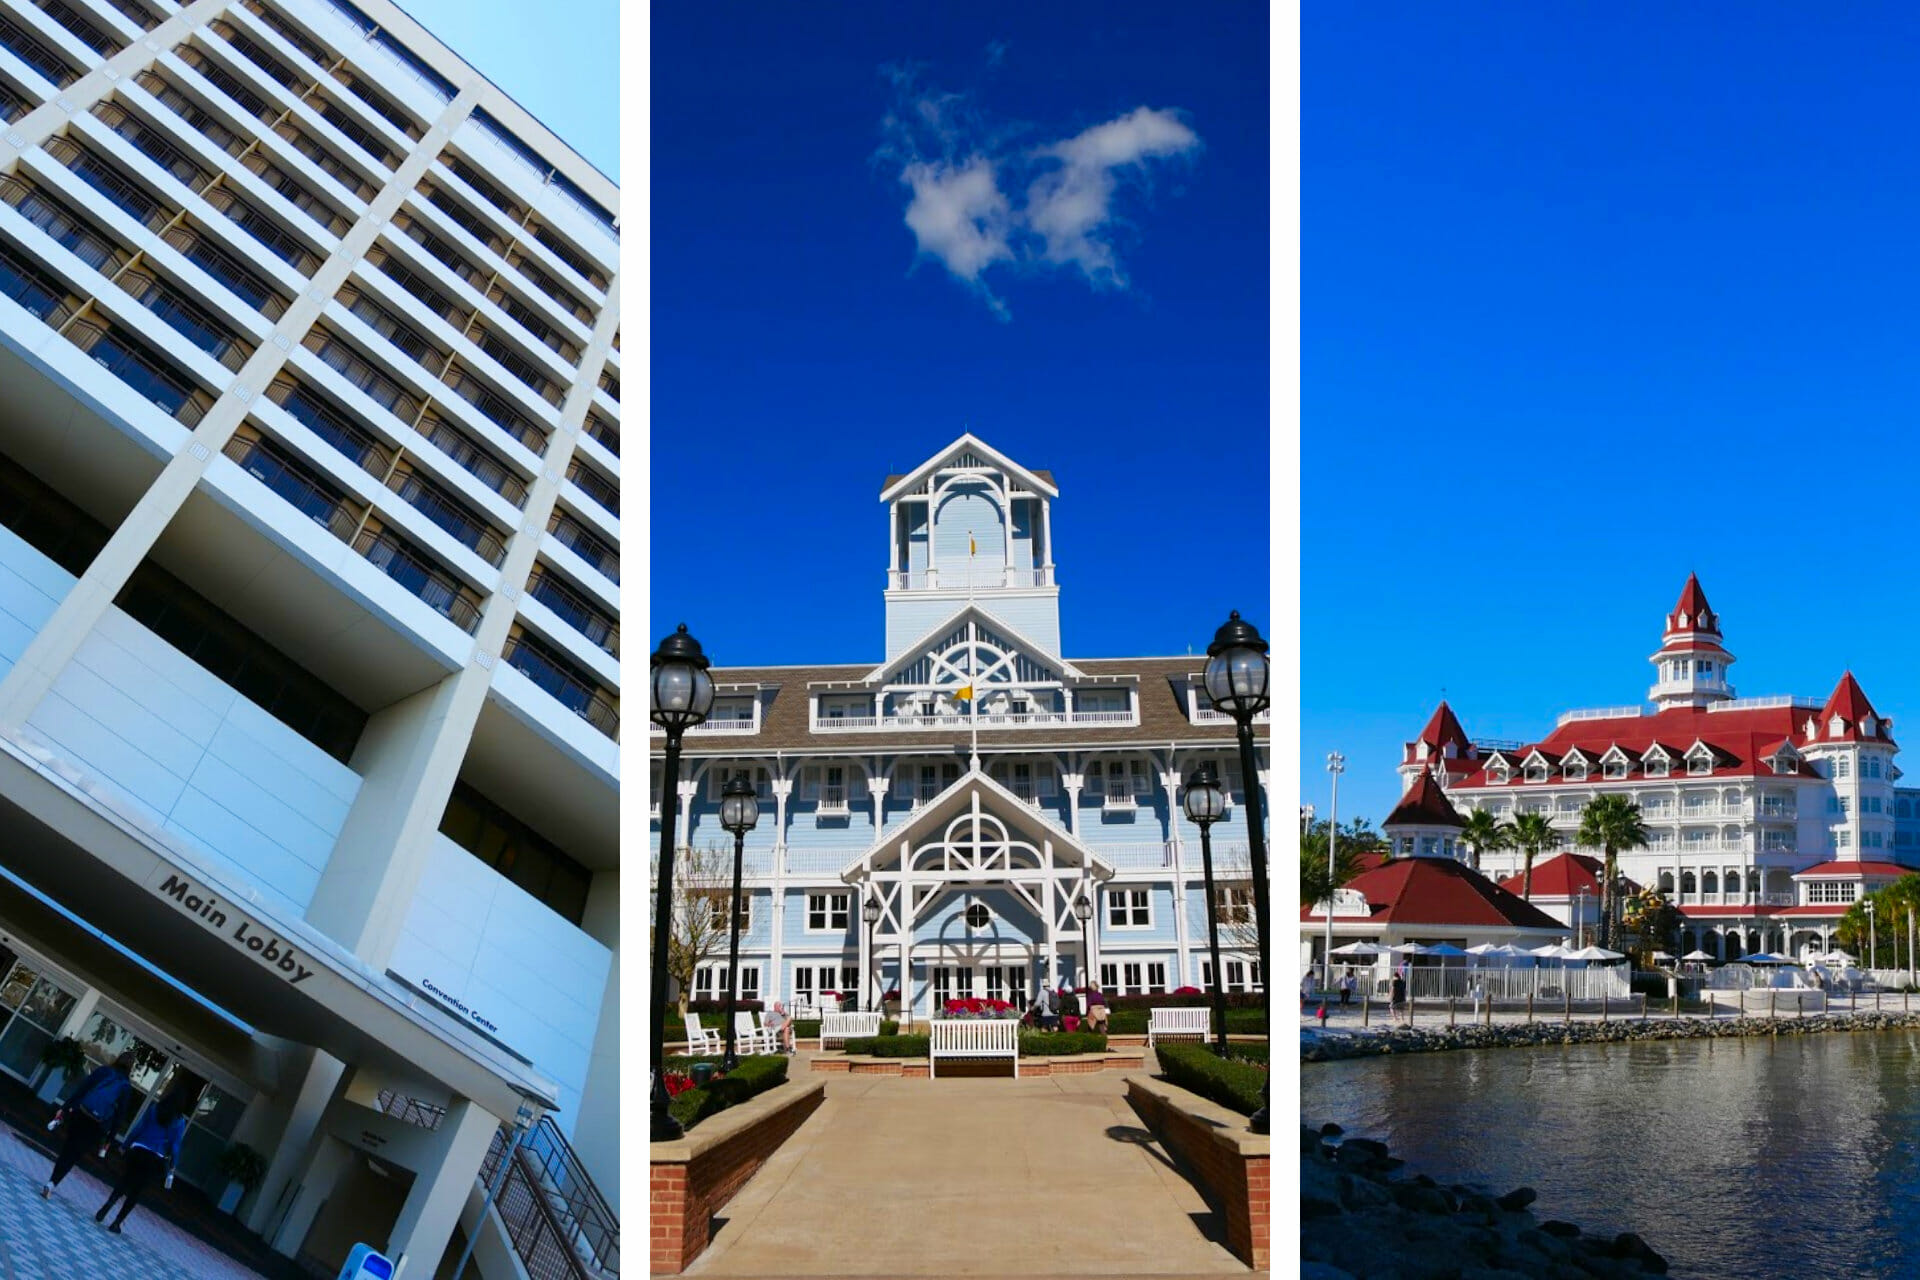 How to Get Upgraded at Disney World Resorts